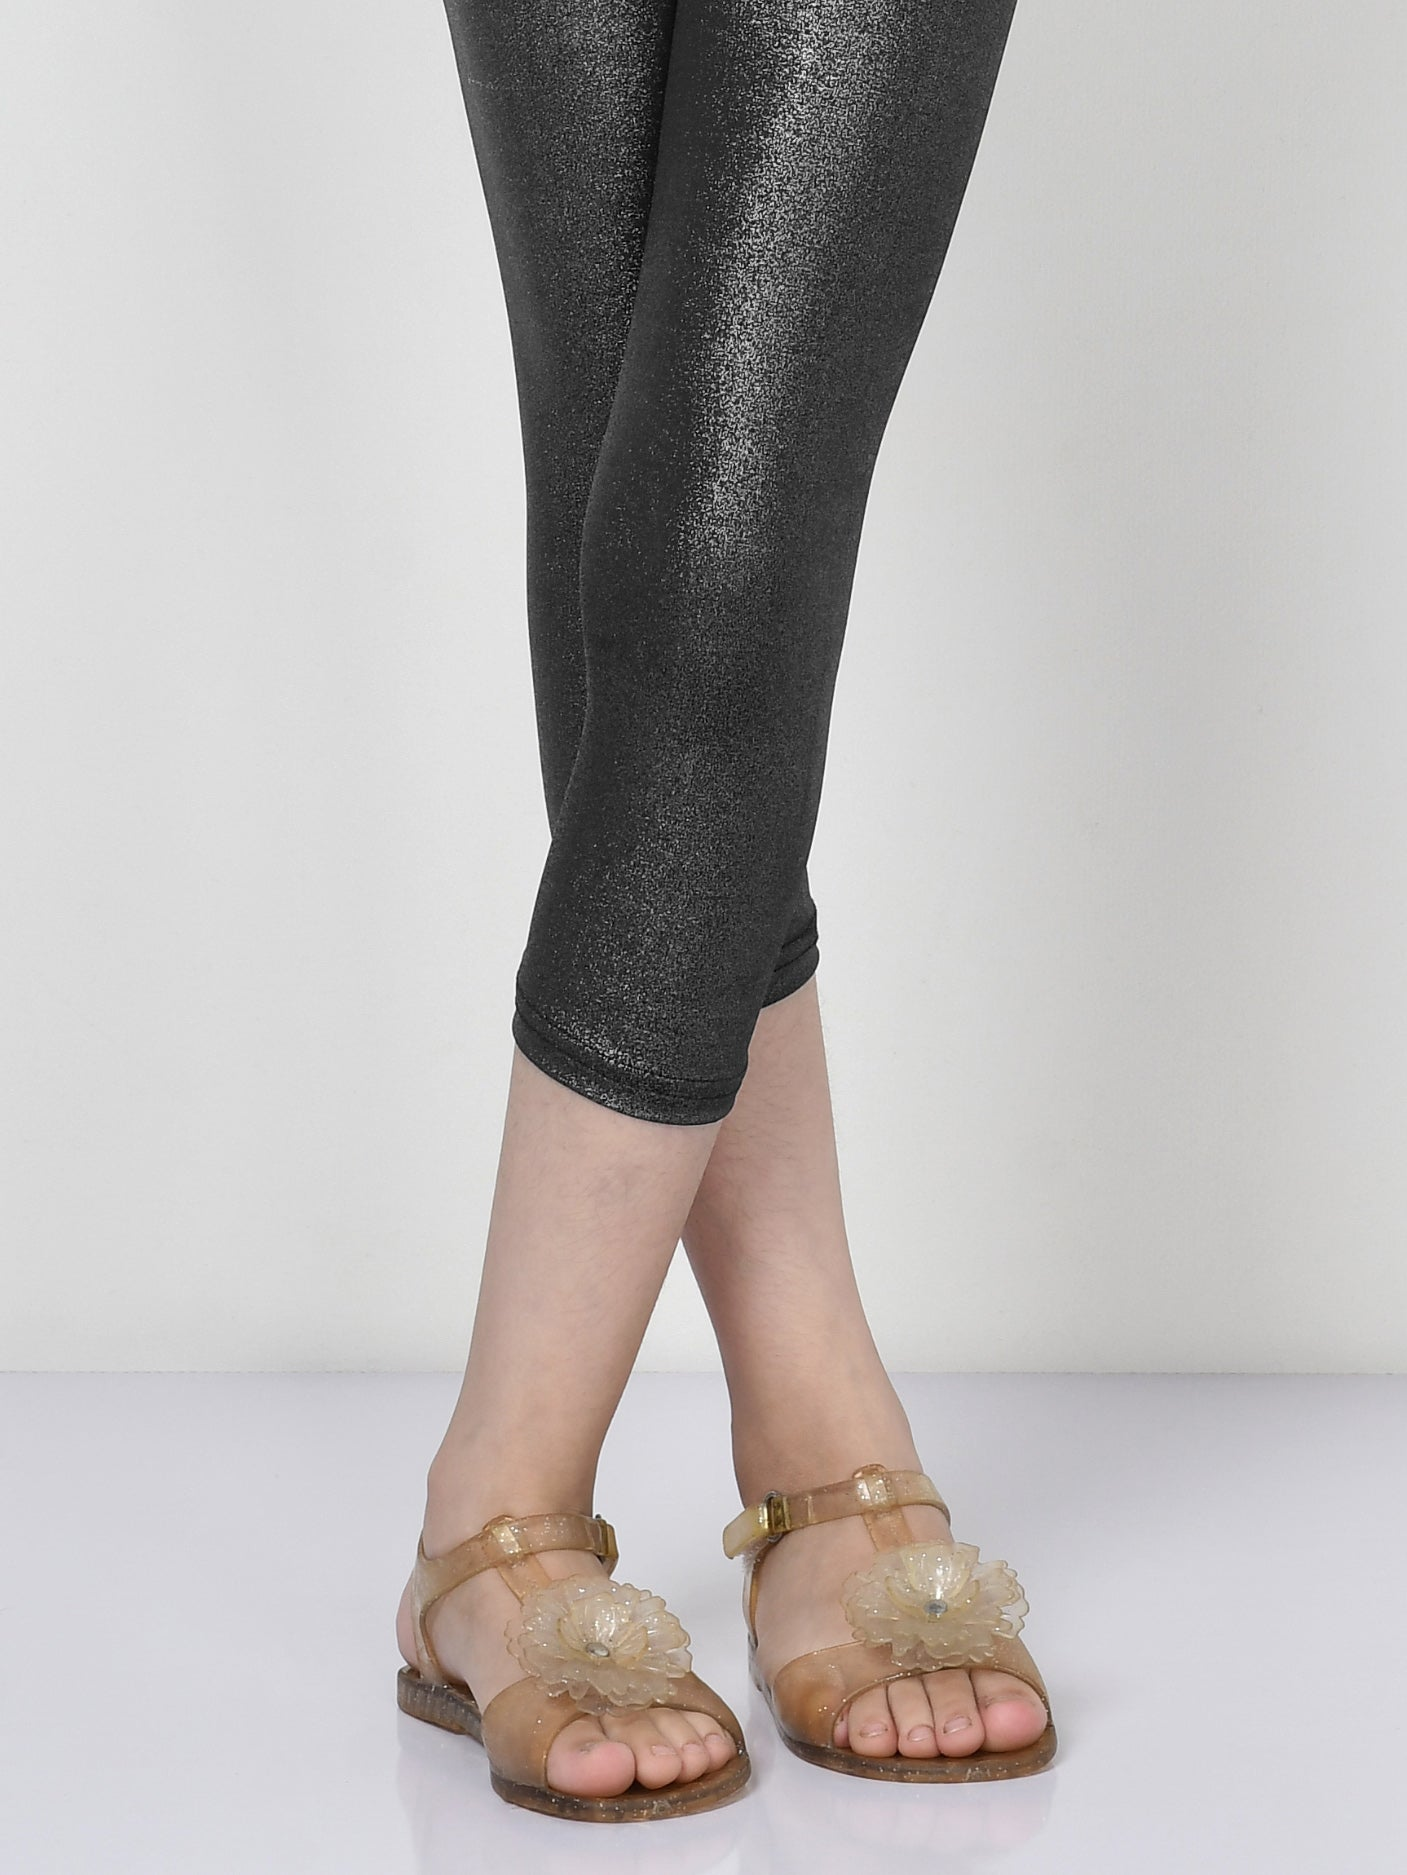 Shimmer Tights - Black and Silver